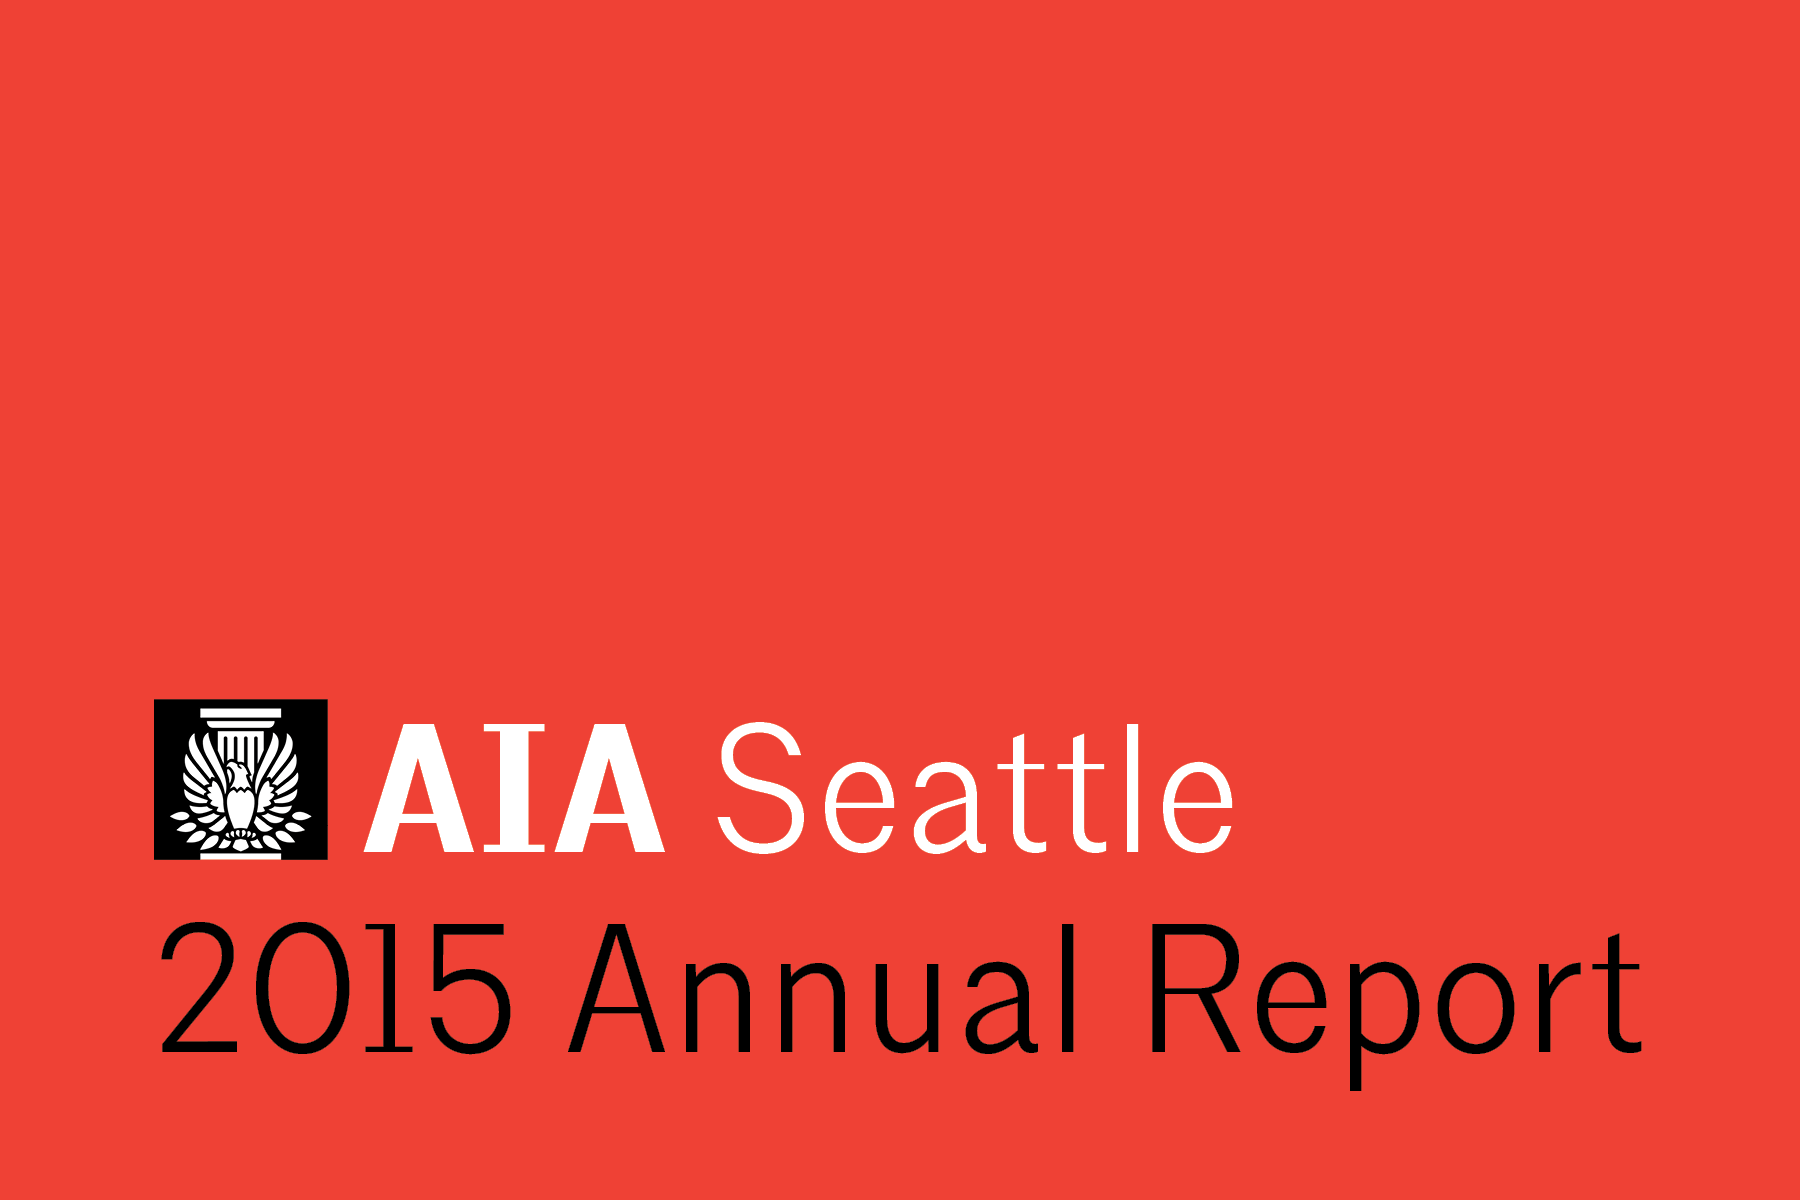 2015 was a year of extraordinary growth and change for AIA Seattle, but also for our profession and our city. As Seattle transformed itself into a 21st century city, we worked together to develop design policies, ideas, skills and networks that promote livability, sustainability and design excellence.